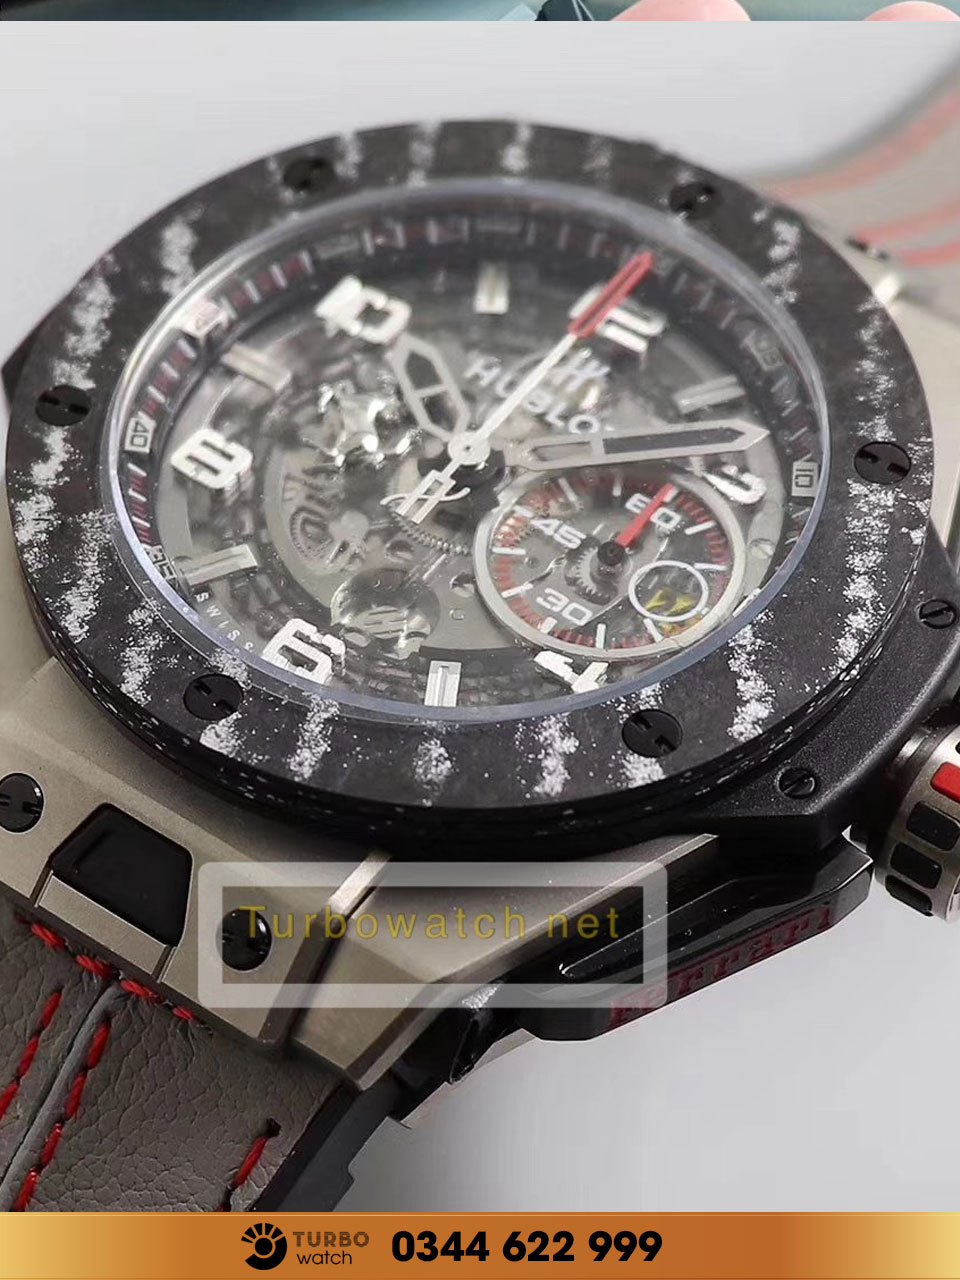 Hublot BIG BANG UNICO fake 1-1 siêu cấp